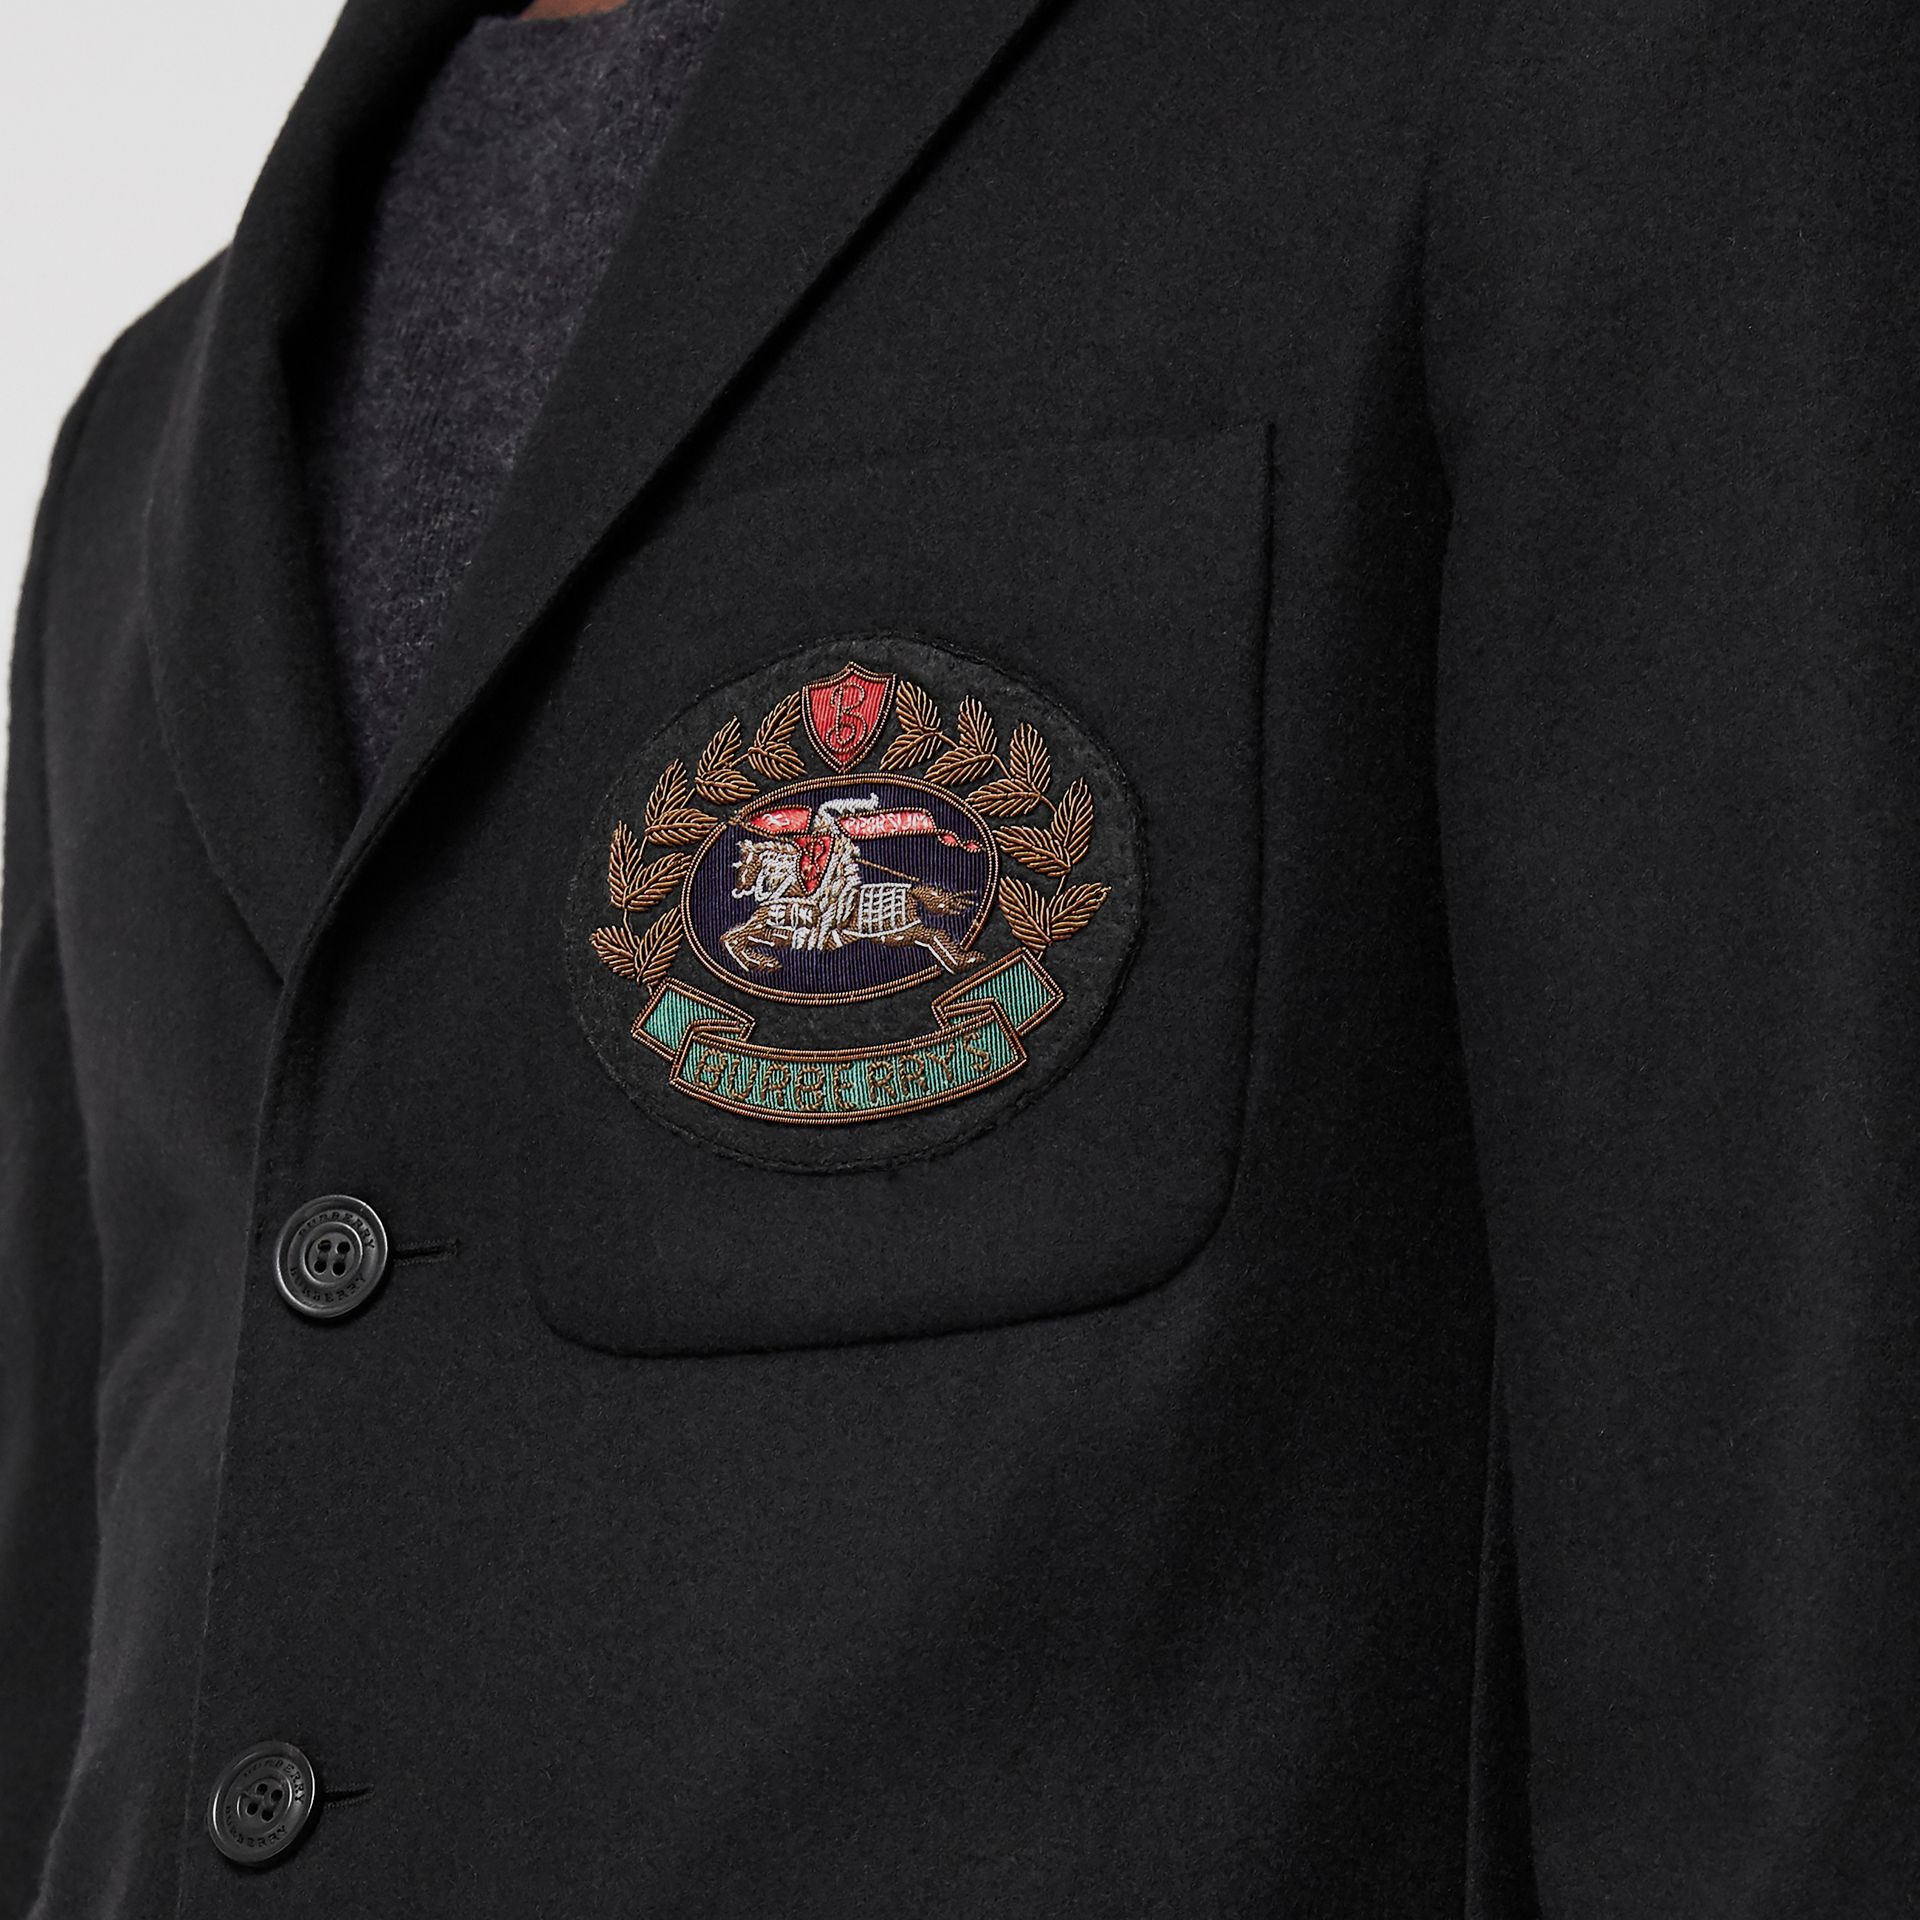 Slim Fit Embroidered Crest Wool Club Blazer in Black - Men | Burberry - gallery image 4